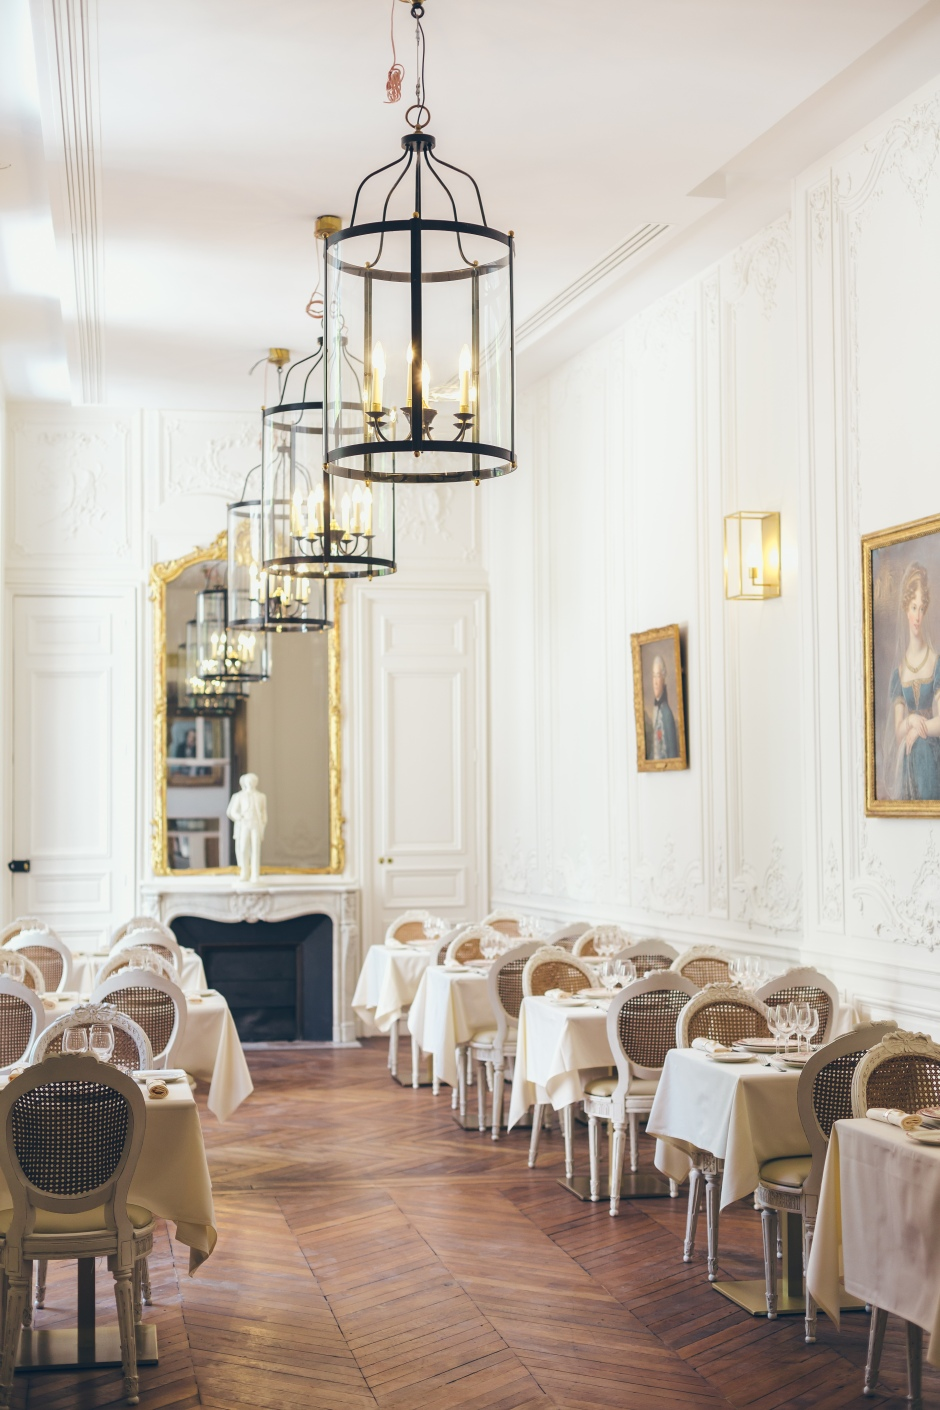 Alfred-Sommier-Hotel-Paris-479